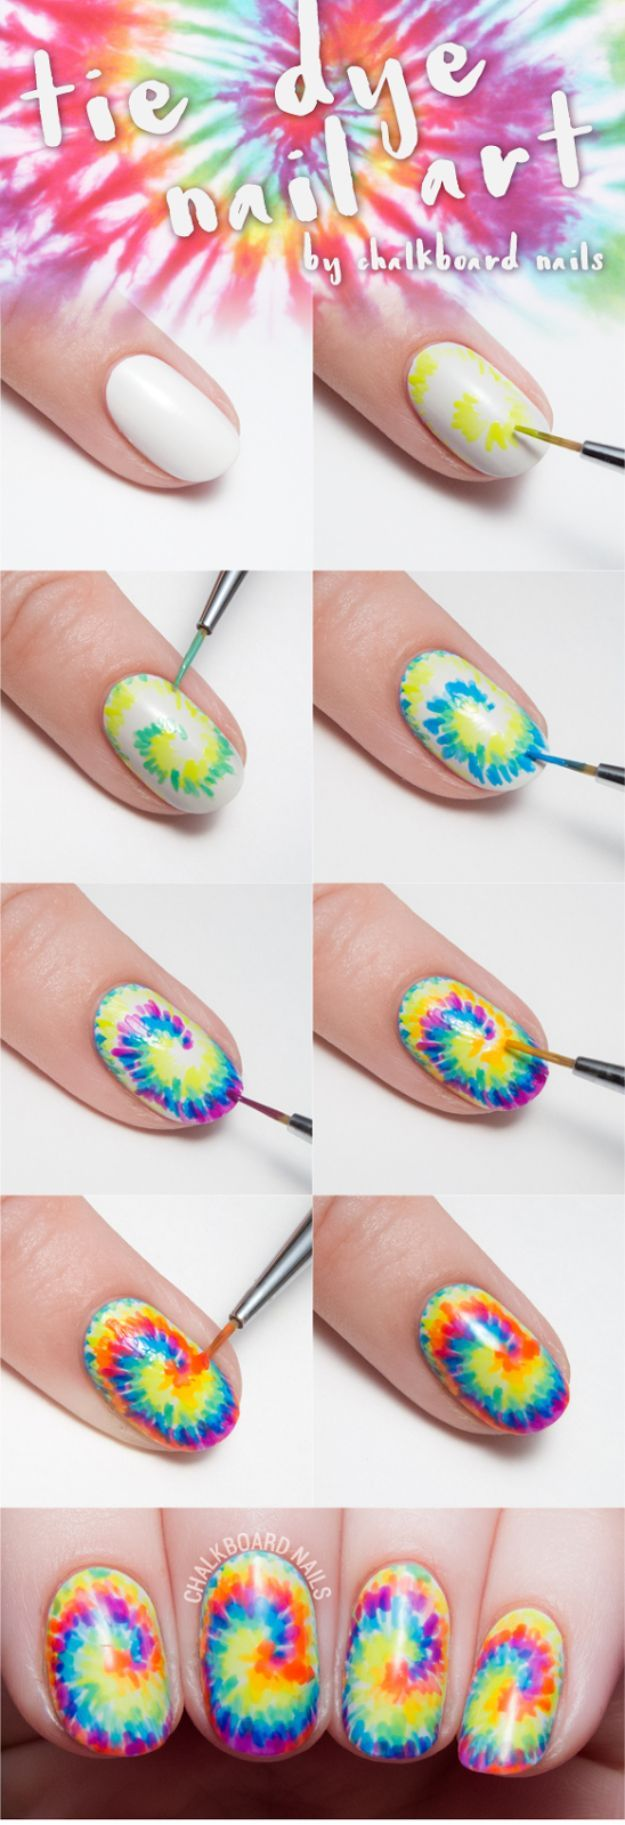 71 best Mani Pedi images on Pinterest | Nail art, Nail design and ...